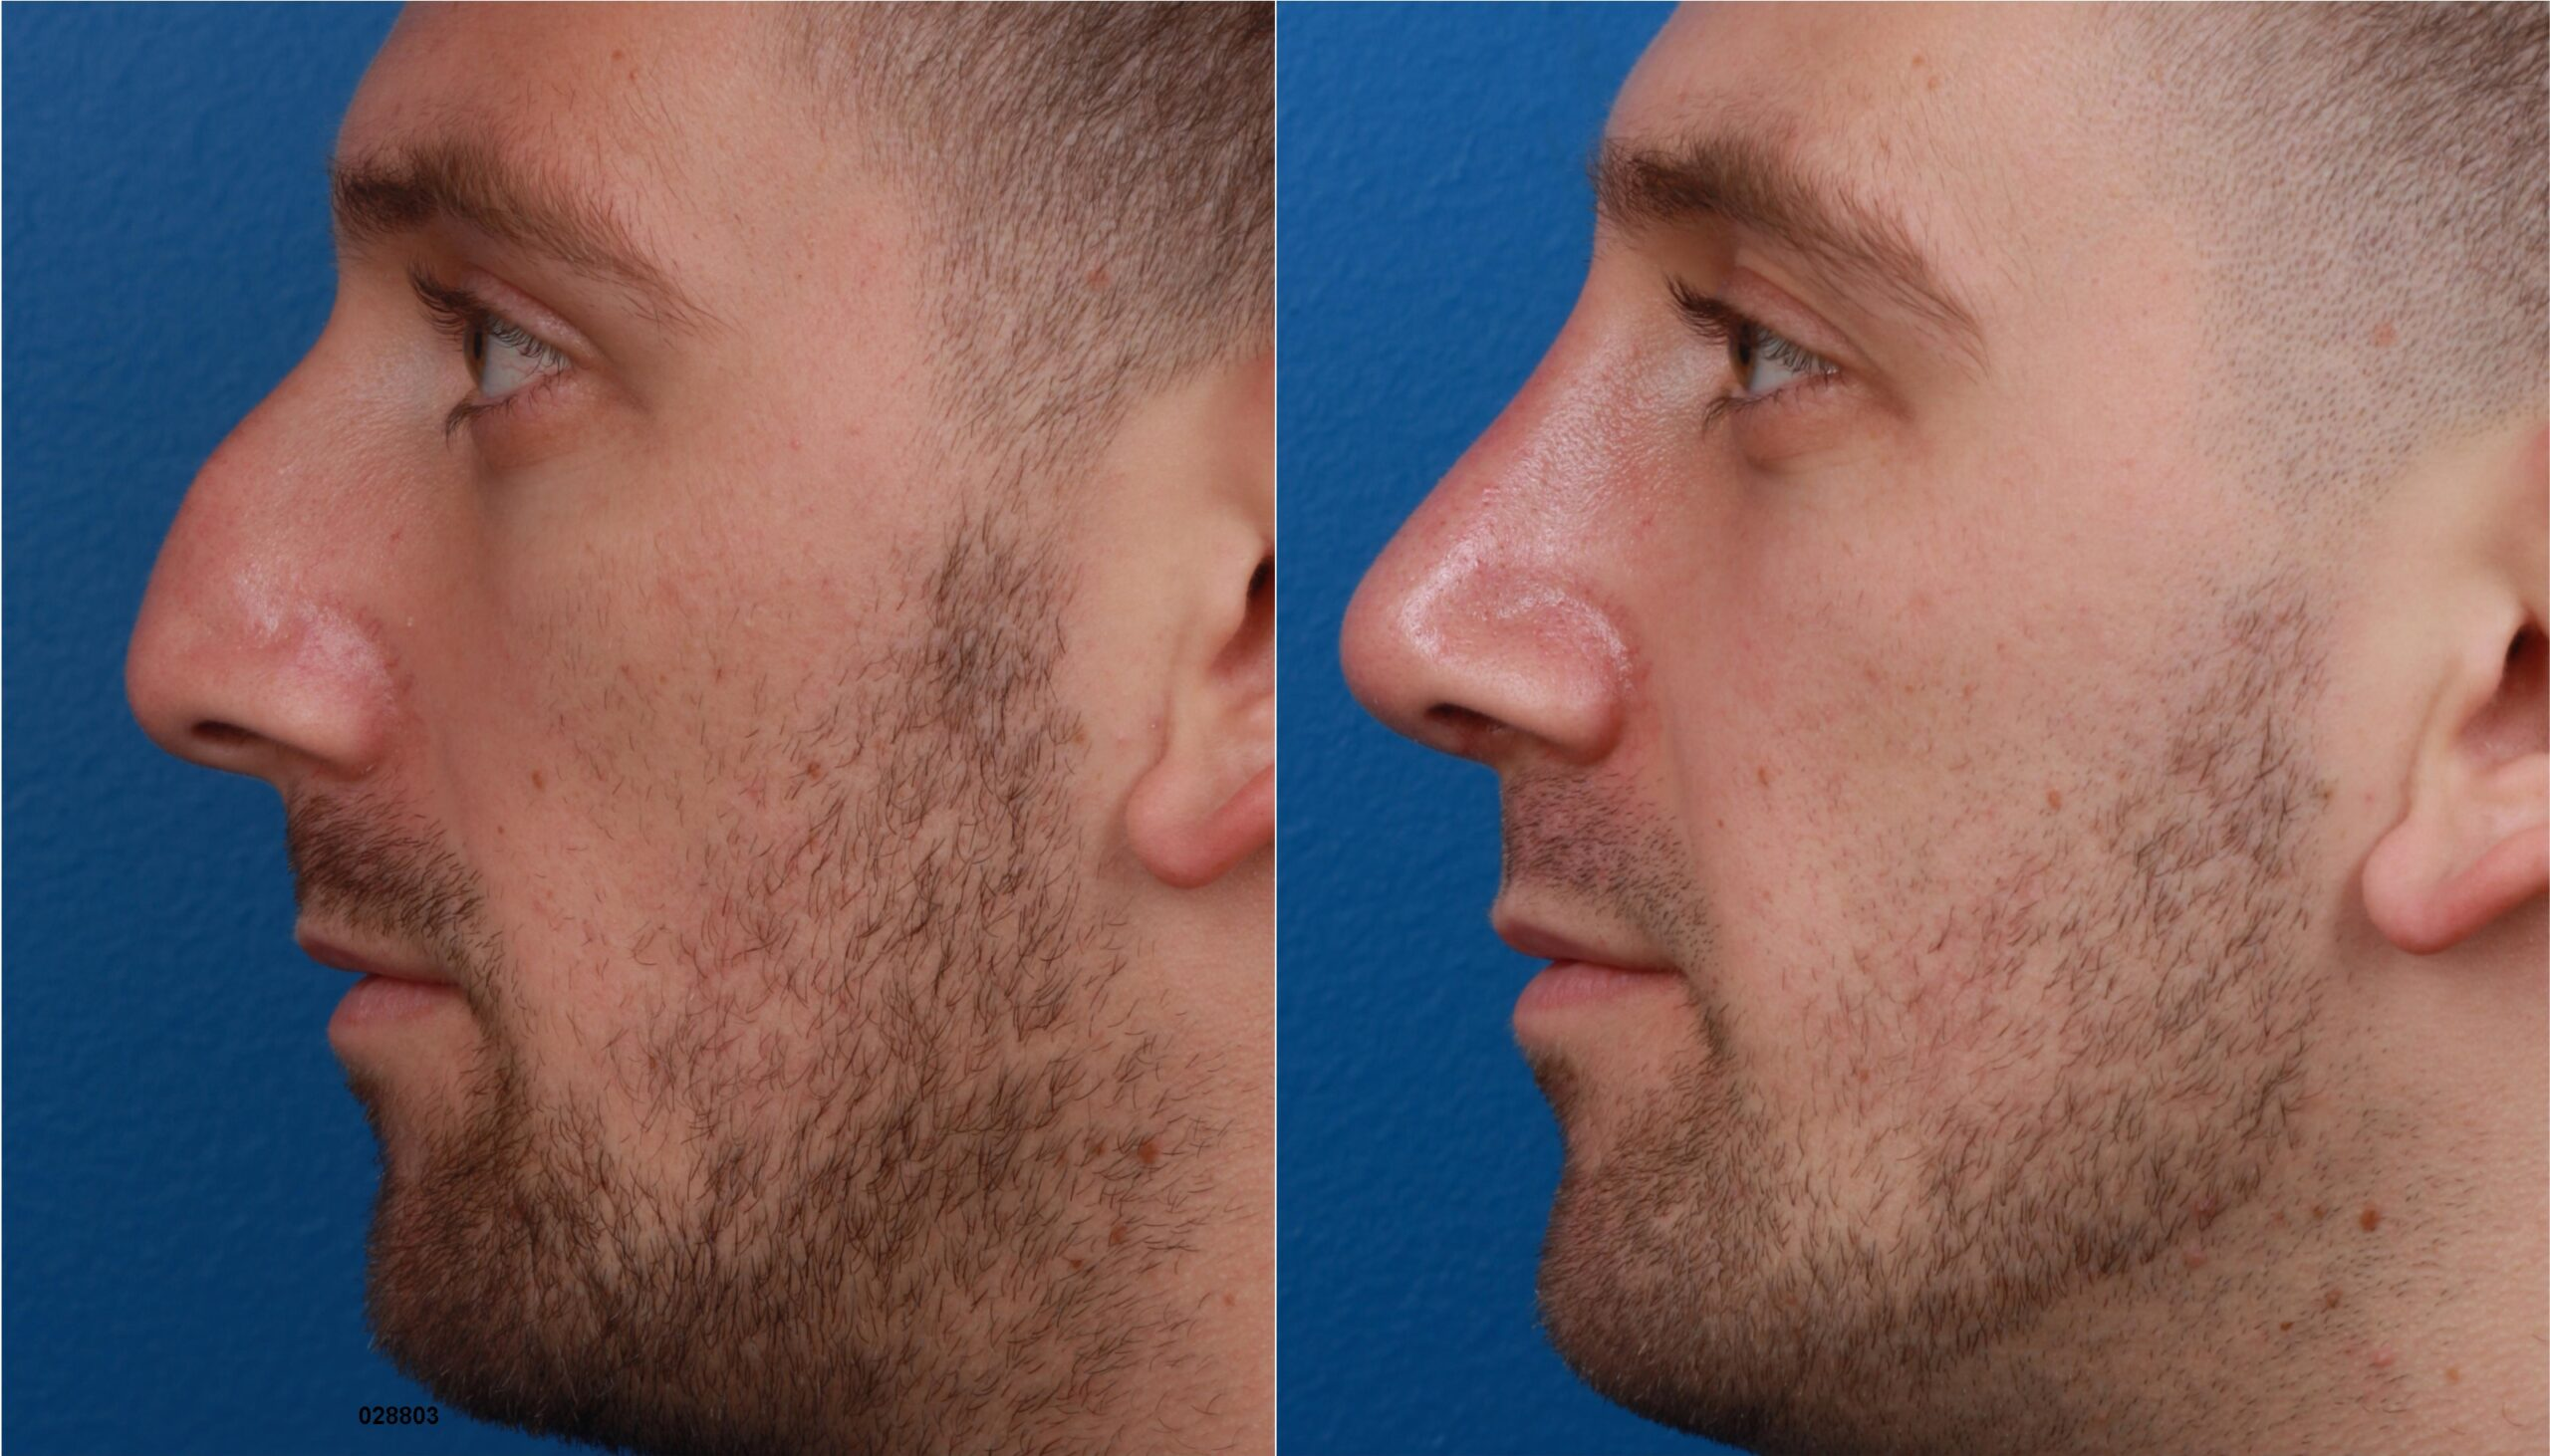 Before and after of a rhinoplasty